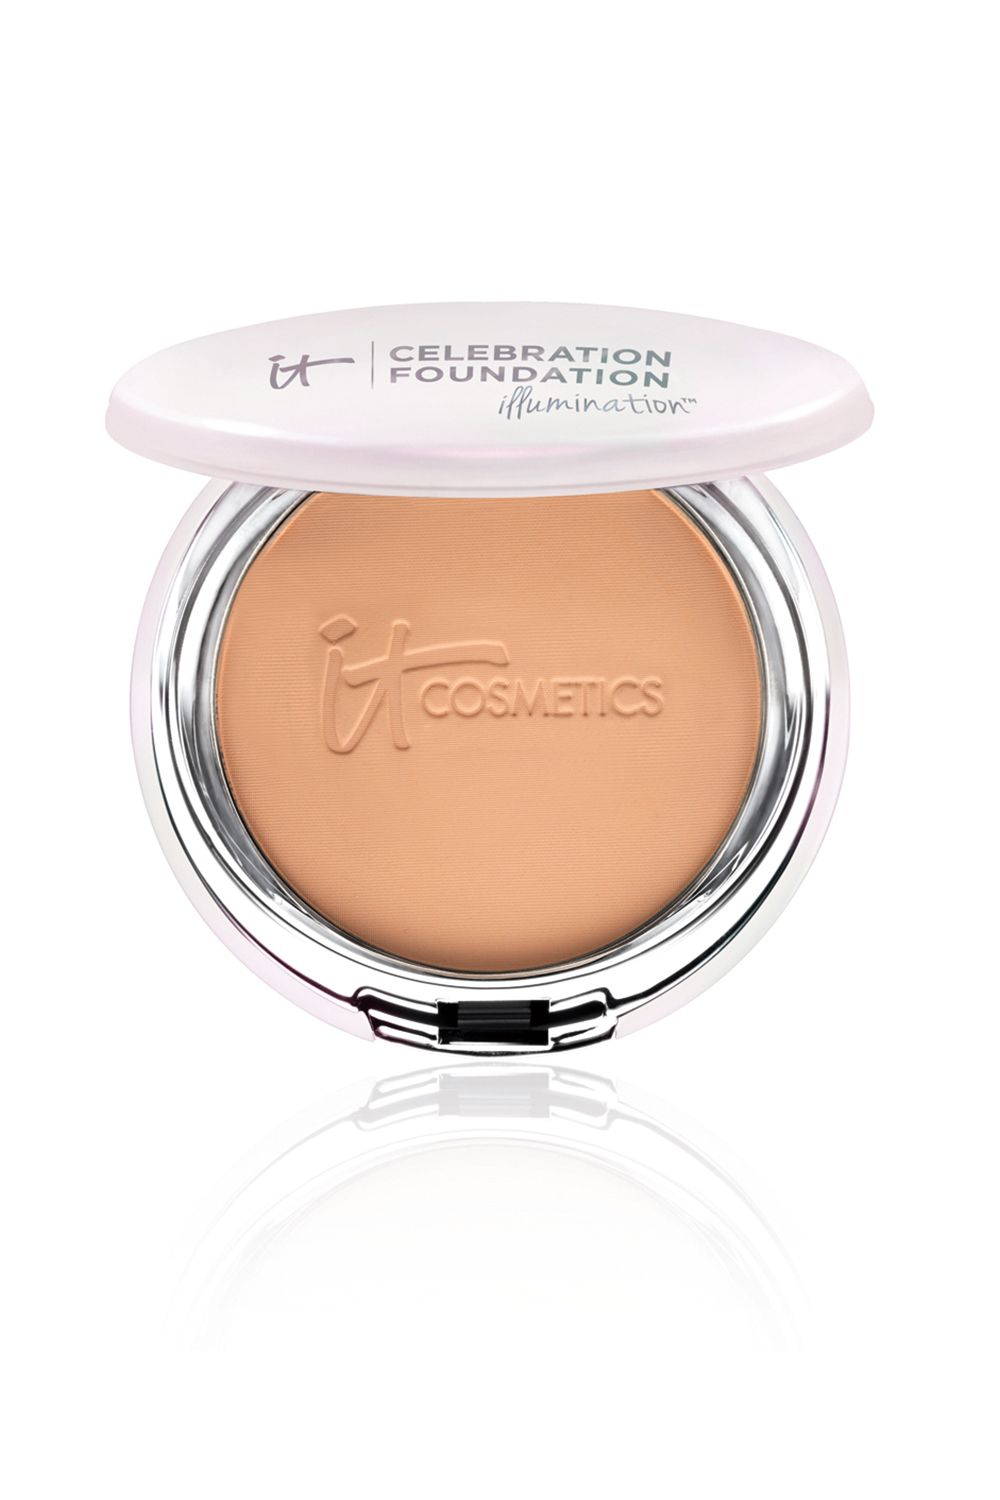 "<p>This lightweight powder is subtly iridescent (zero flecks of glitter or shimmer, here) and so insanely silky, it'll highlight dull, blah skin without sticking to dry patches.</p><p><i data-redactor-tag=""i"">It Cosmetics Celebration Foundation Illumination, $35</i></p><p><strong data-redactor-tag=""strong"">BUY IT: <a href=""http://www.ulta.com/celebration-foundation-illumination?productId=xlsImpprod6420042"">ulta.com</a>. </strong></p>"